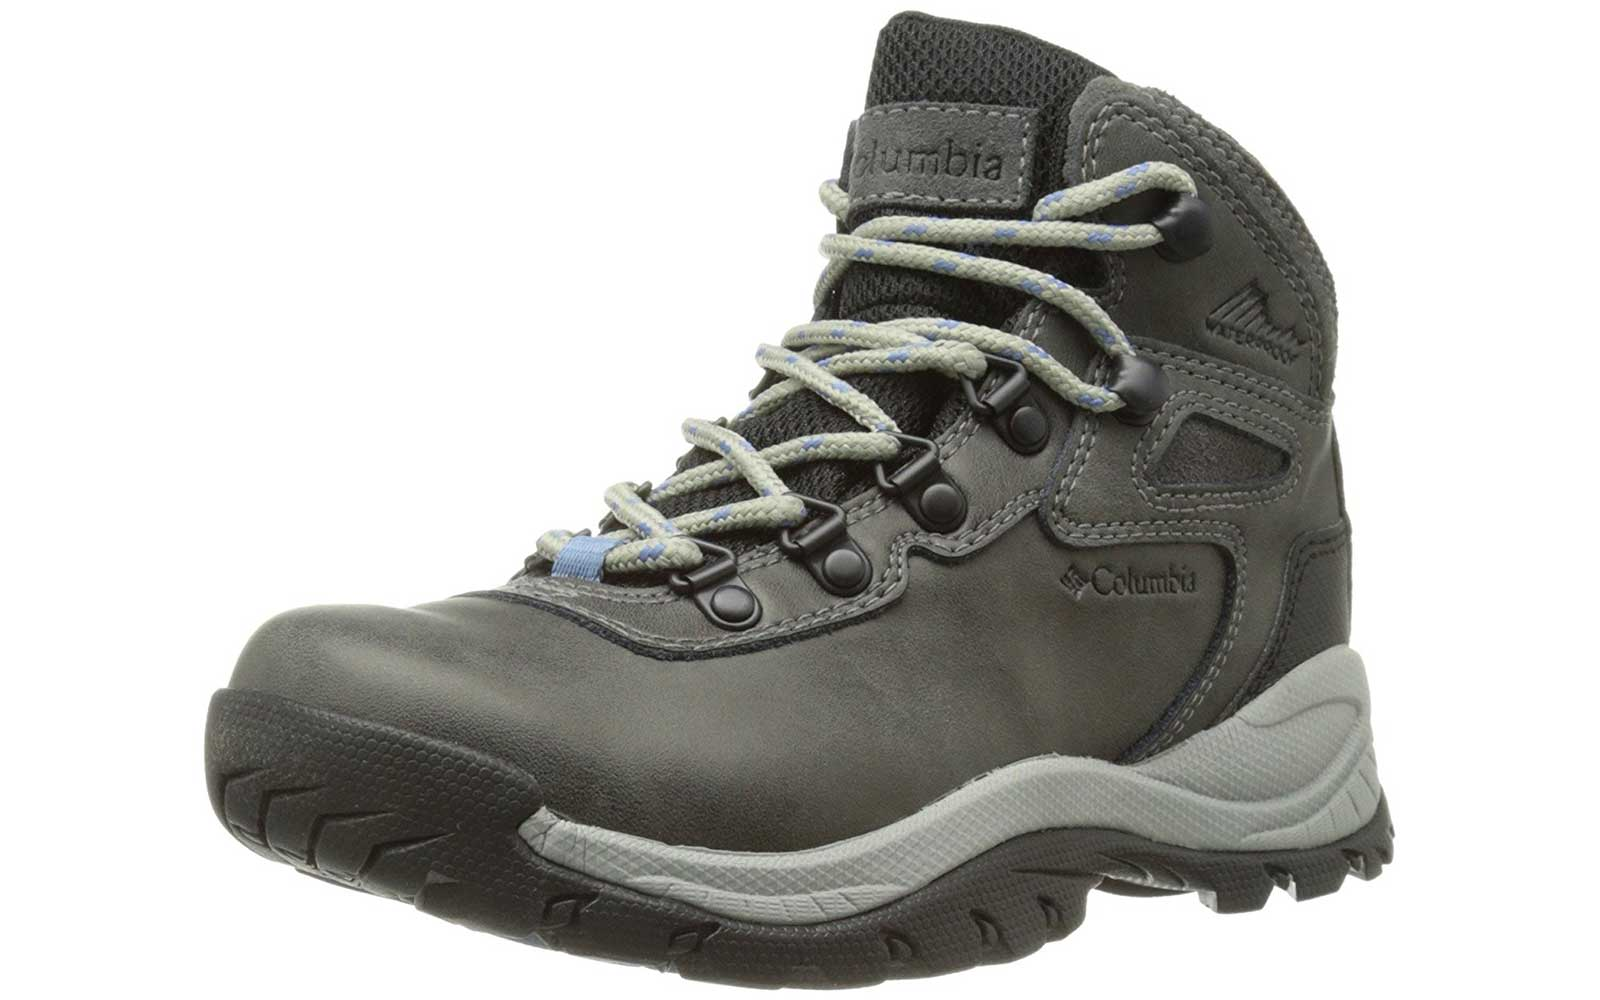 020642e9b1c7a The 10 Best Hiking Shoes on Amazon | Travel + Leisure